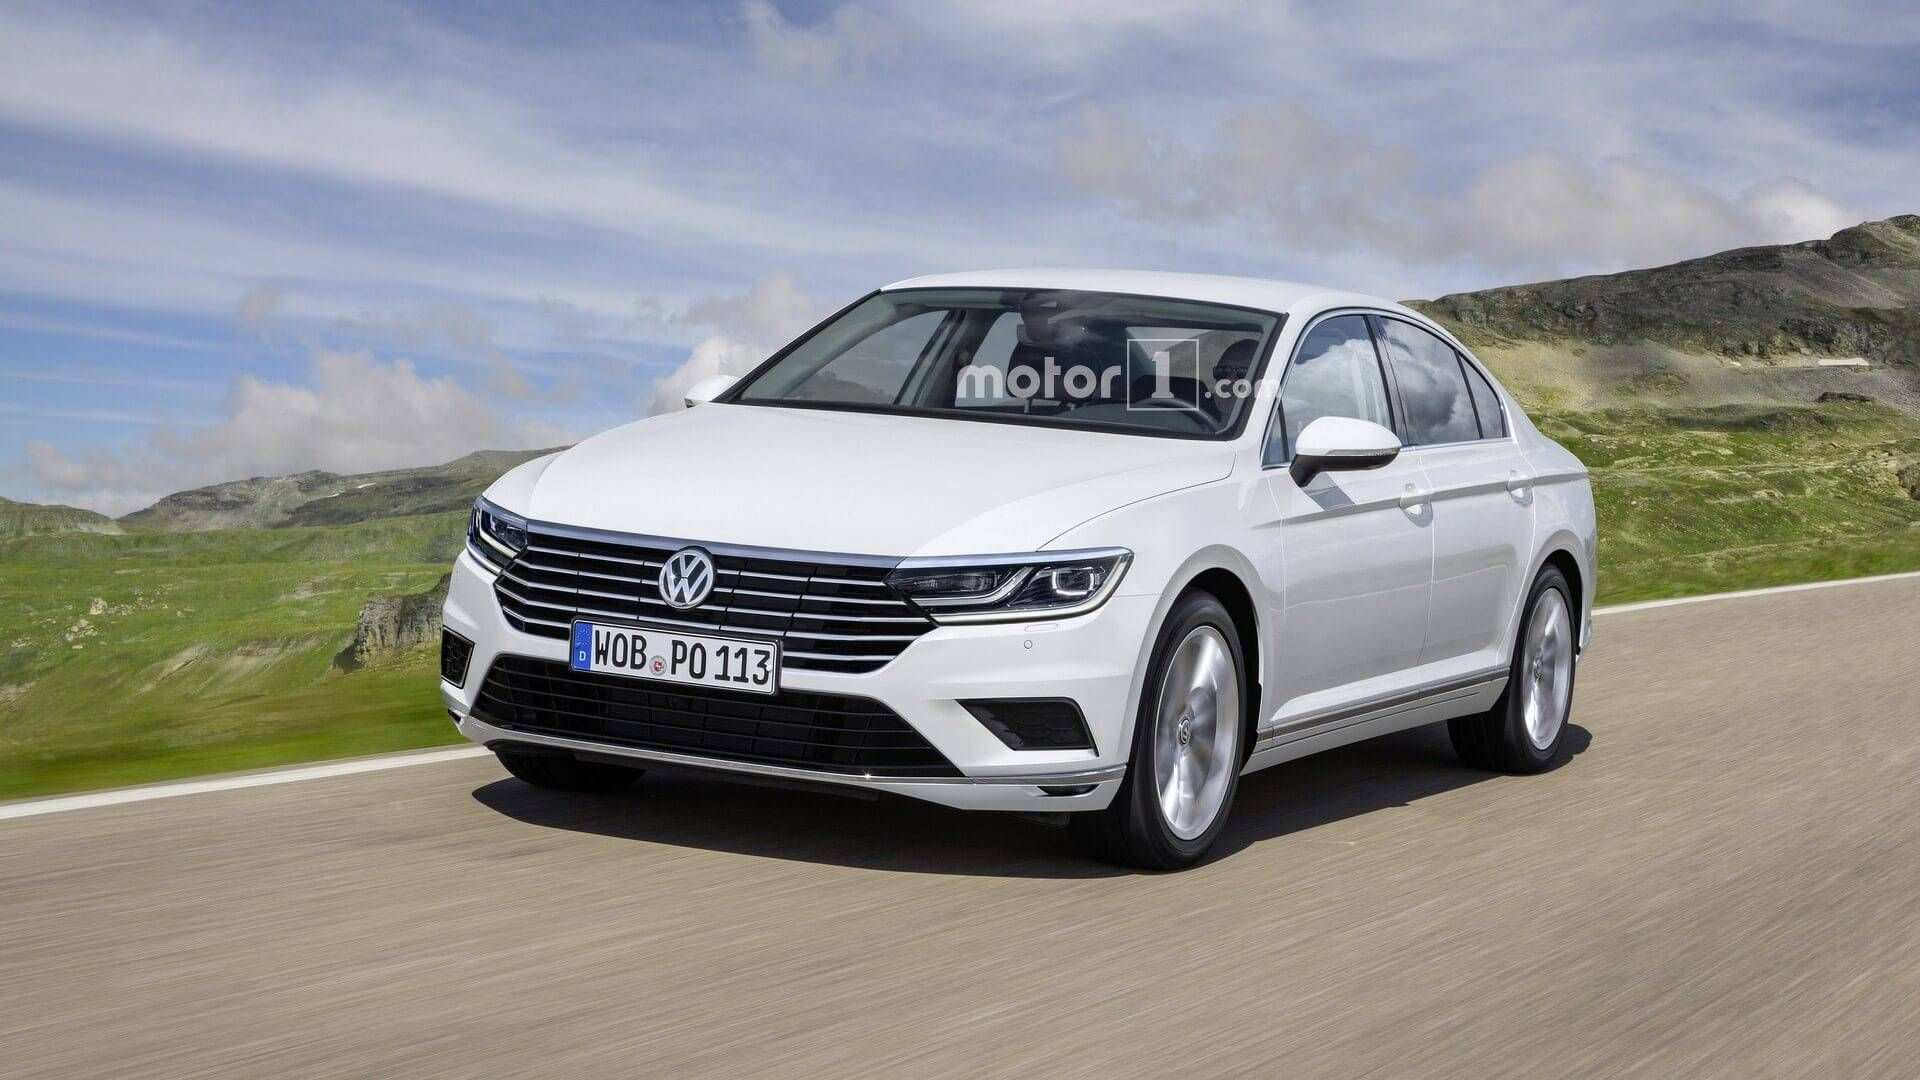 42 Gallery of Best Volkswagen Passat 2019 Release Date Engine for Best Volkswagen Passat 2019 Release Date